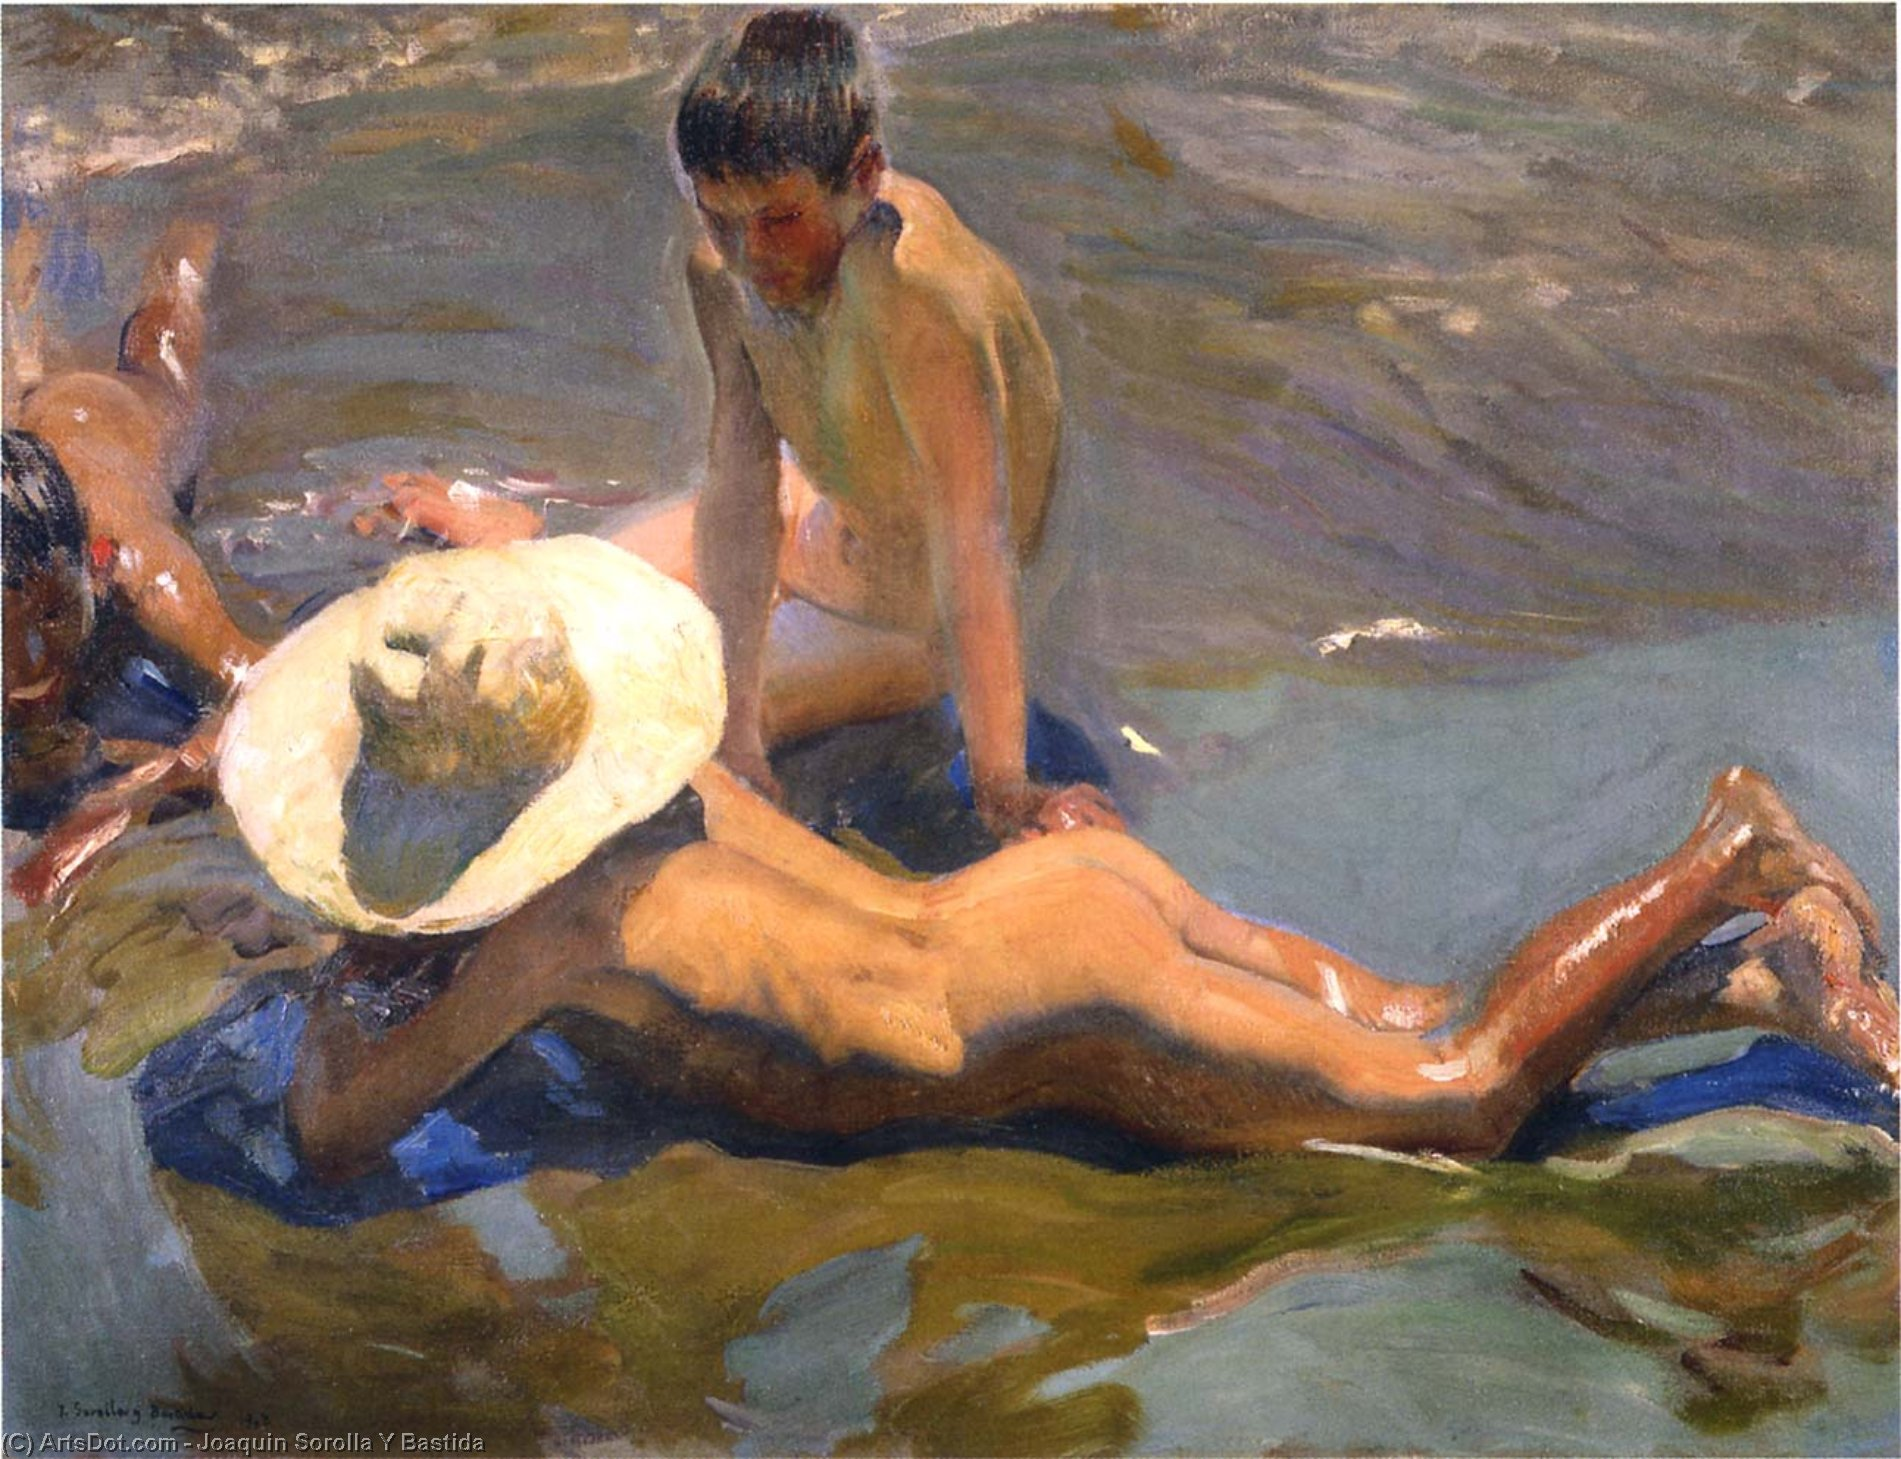 Boys on the Beach 1, Oil by Joaquin Sorolla Y Bastida (1863-1923, Spain)